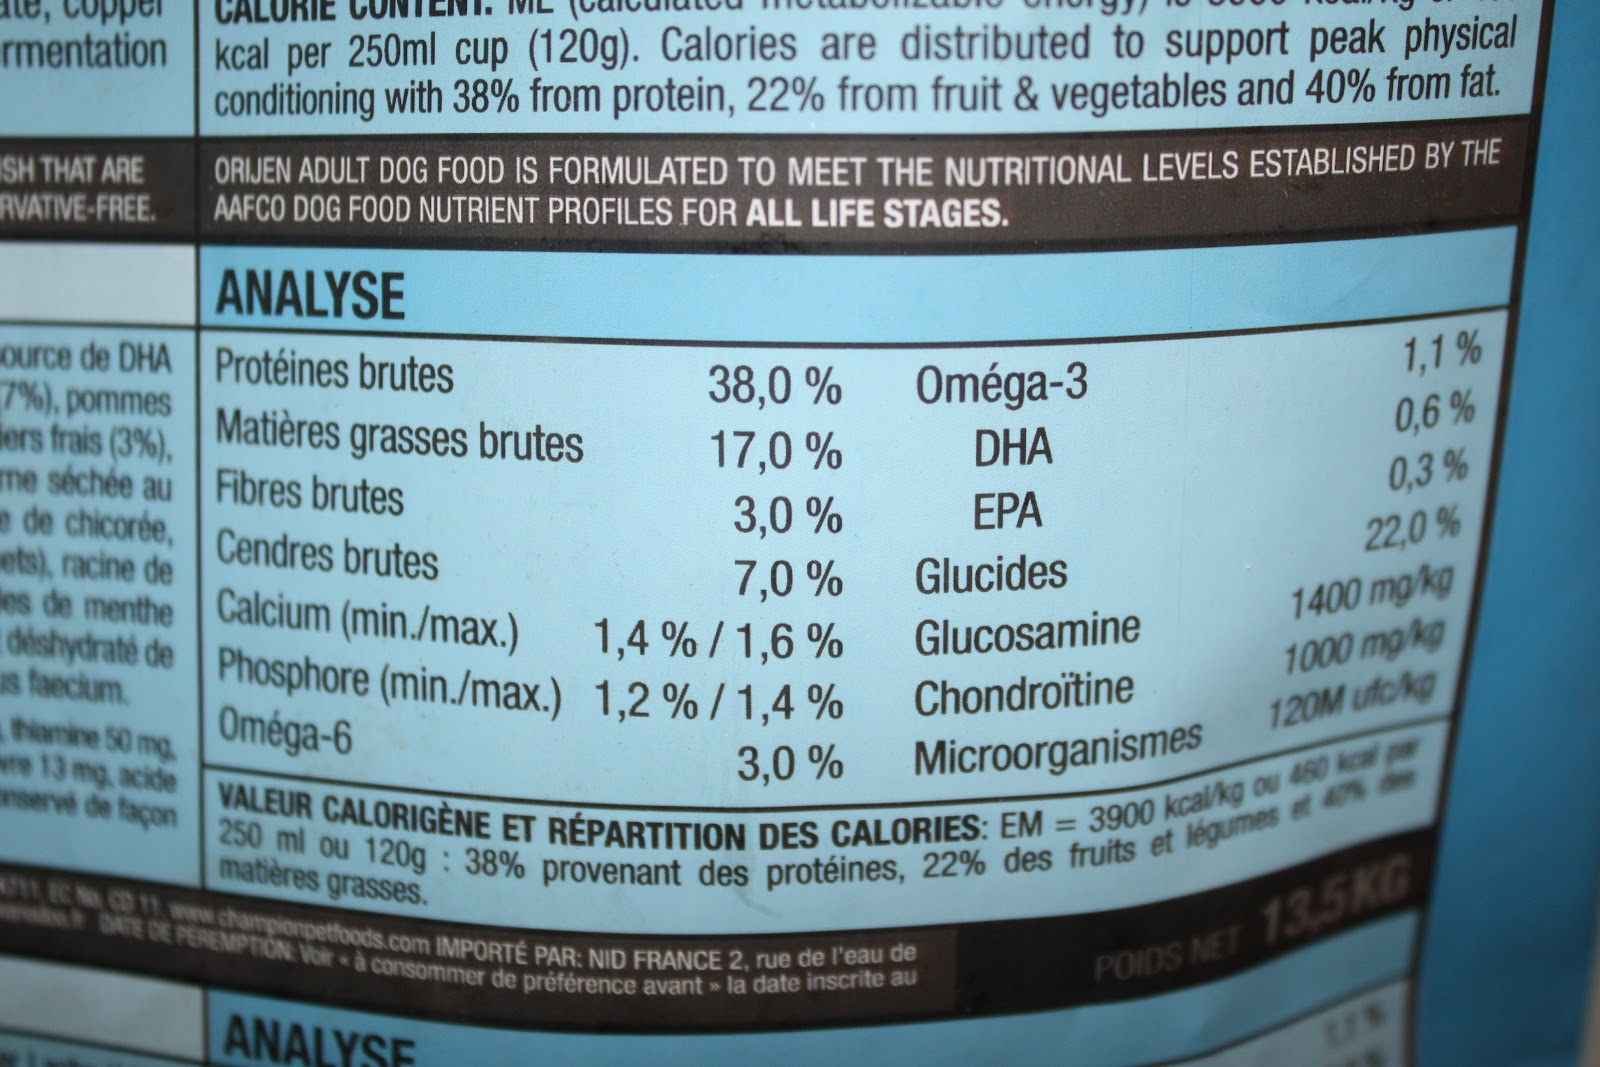 Orijen Dog Food Nutritional Info